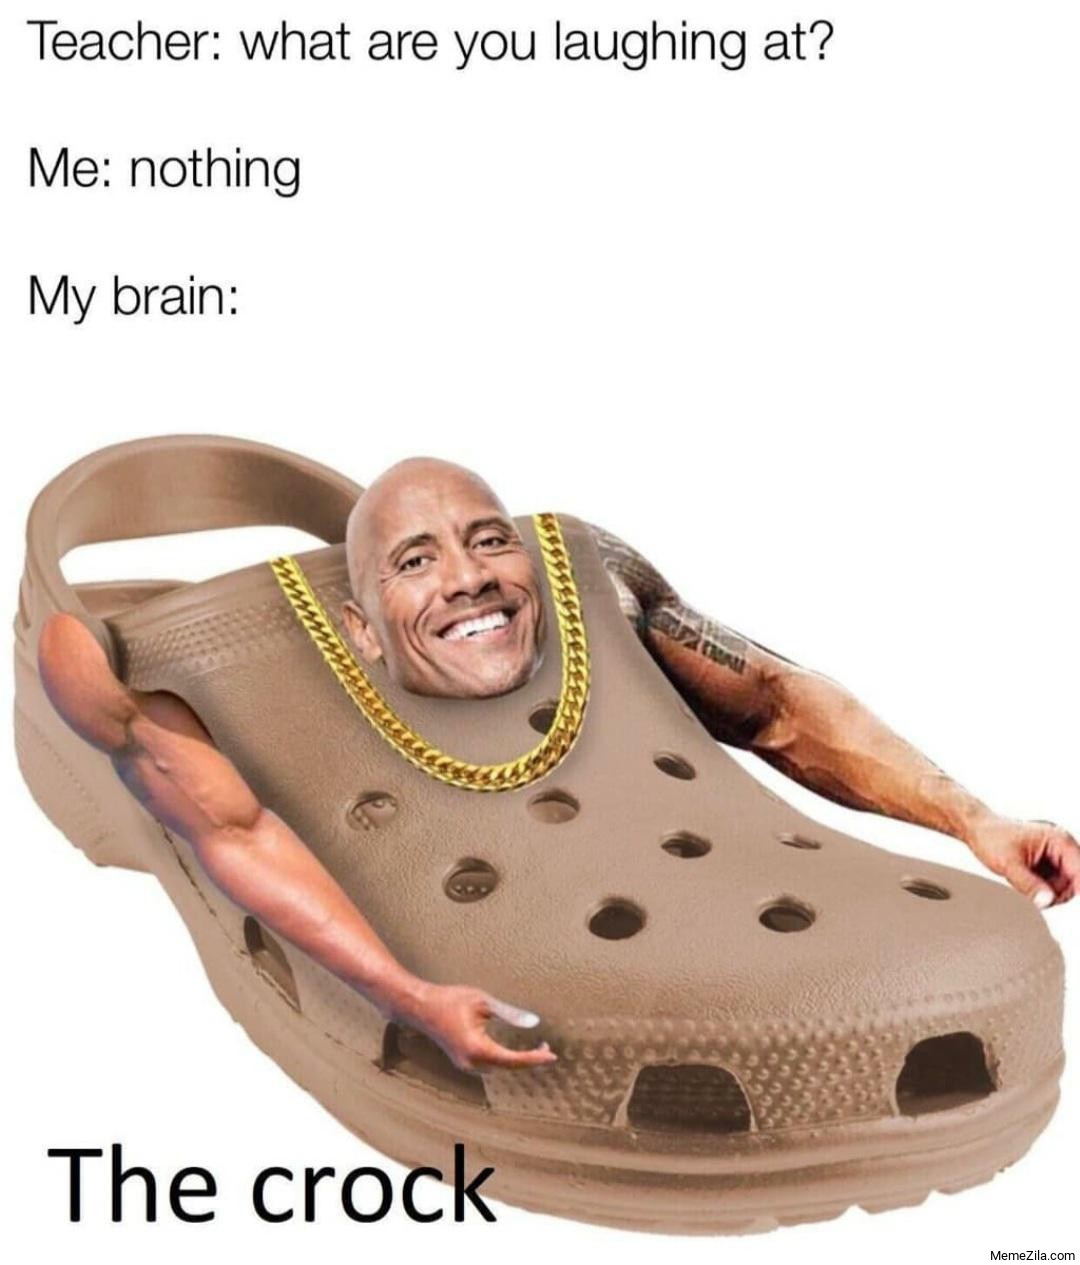 Why are you laughing at Me nothing My brain The crock meme